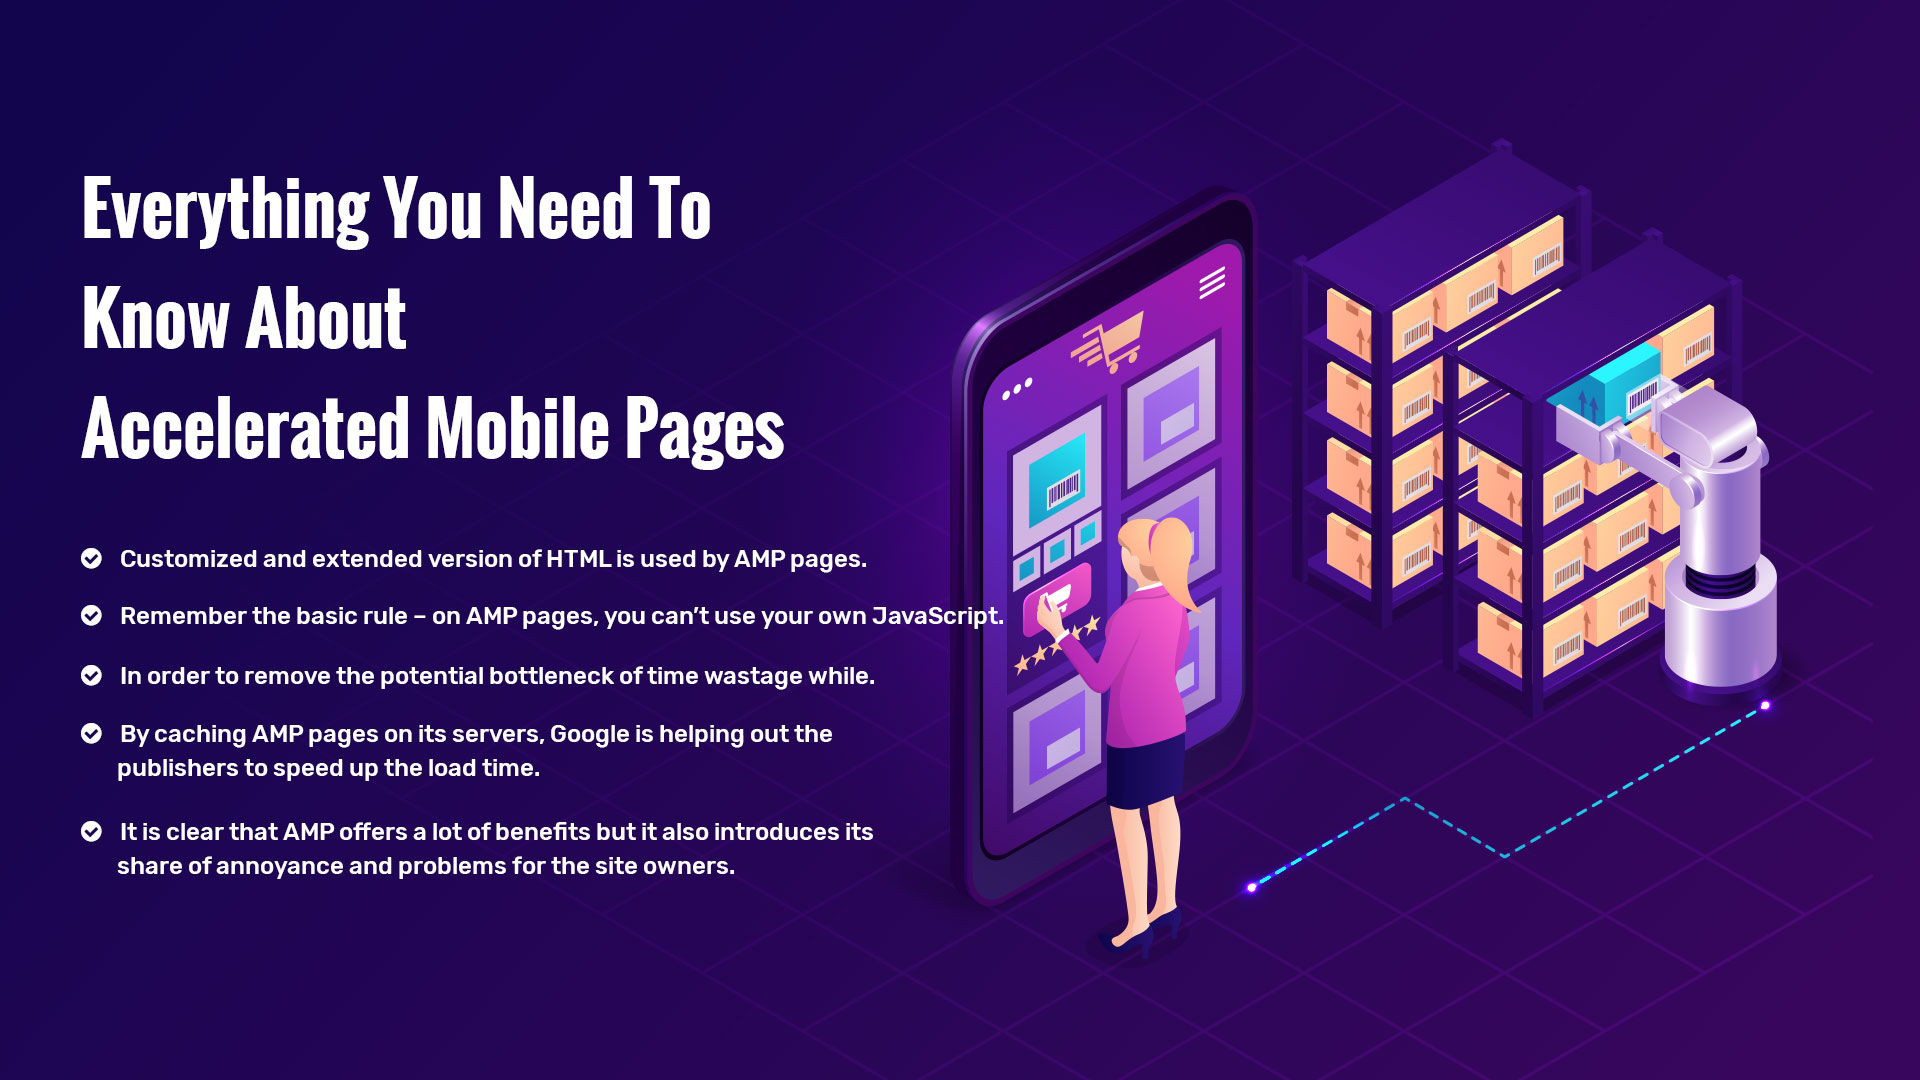 Everything You Need To Know About Accelerated Mobile Pages